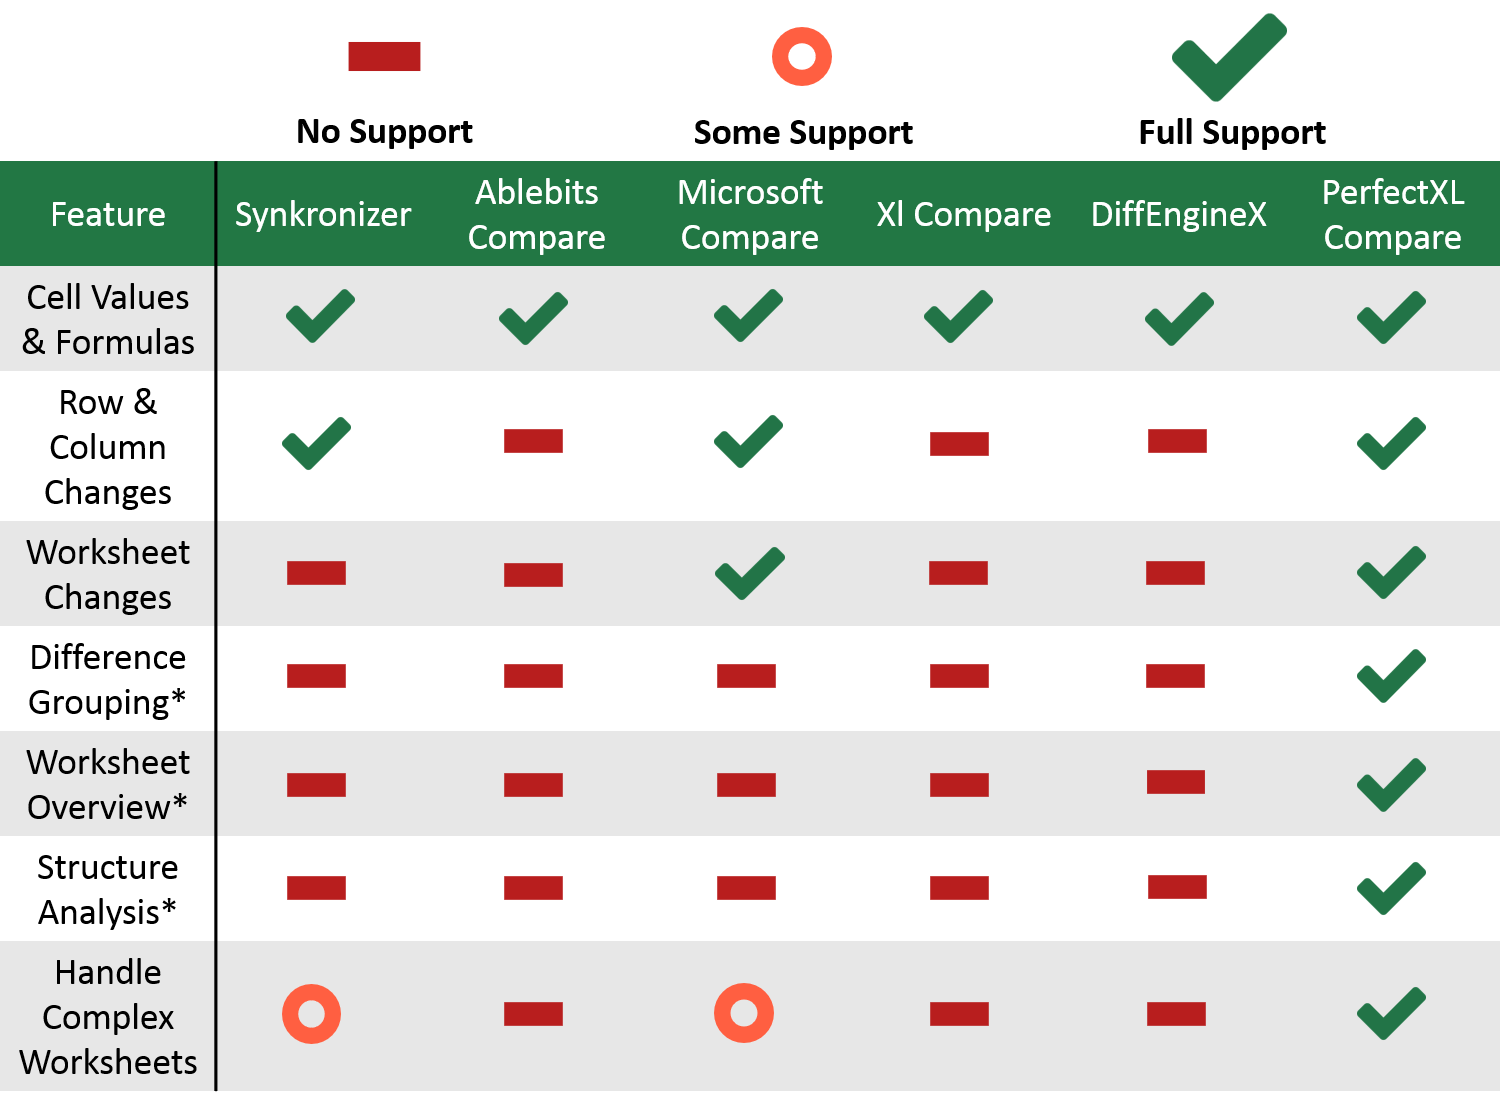 Spreadsheet comparison // Overview of features of providers // PerfectXL Compare